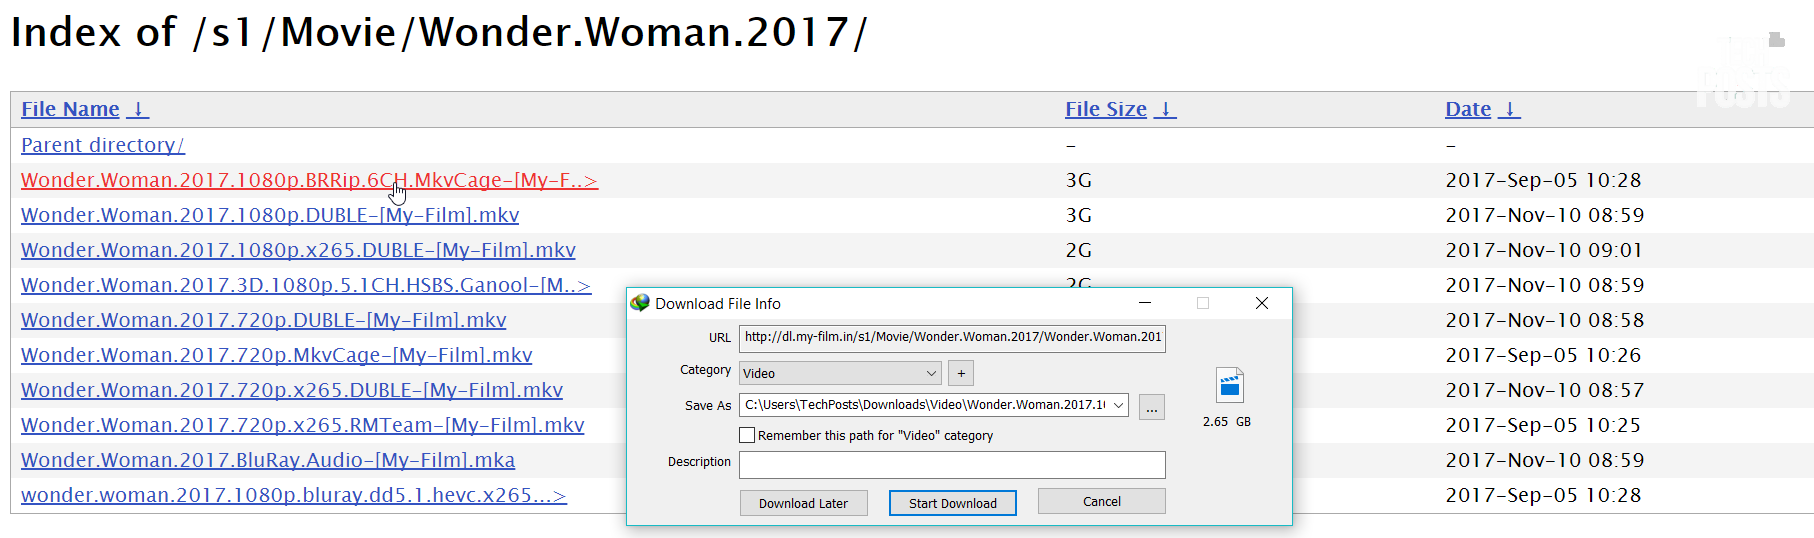 Index of _s1_Movie_Wonder.Woman.2017 Downloading